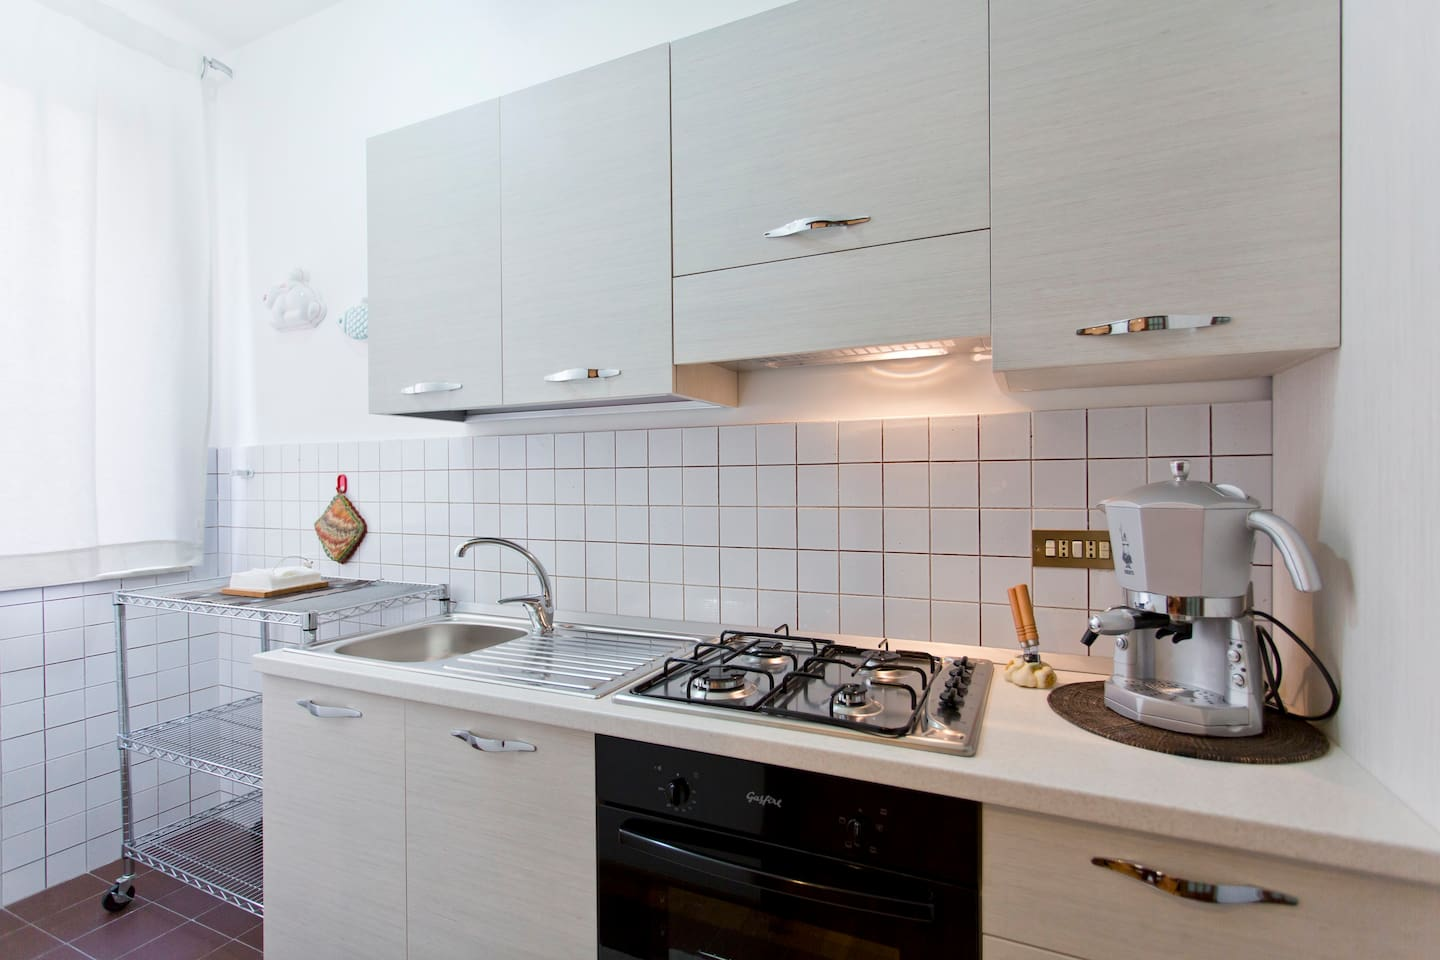 Sofia\'s House - 60 mq - free wi fi - Apartments for Rent in Palermo ...